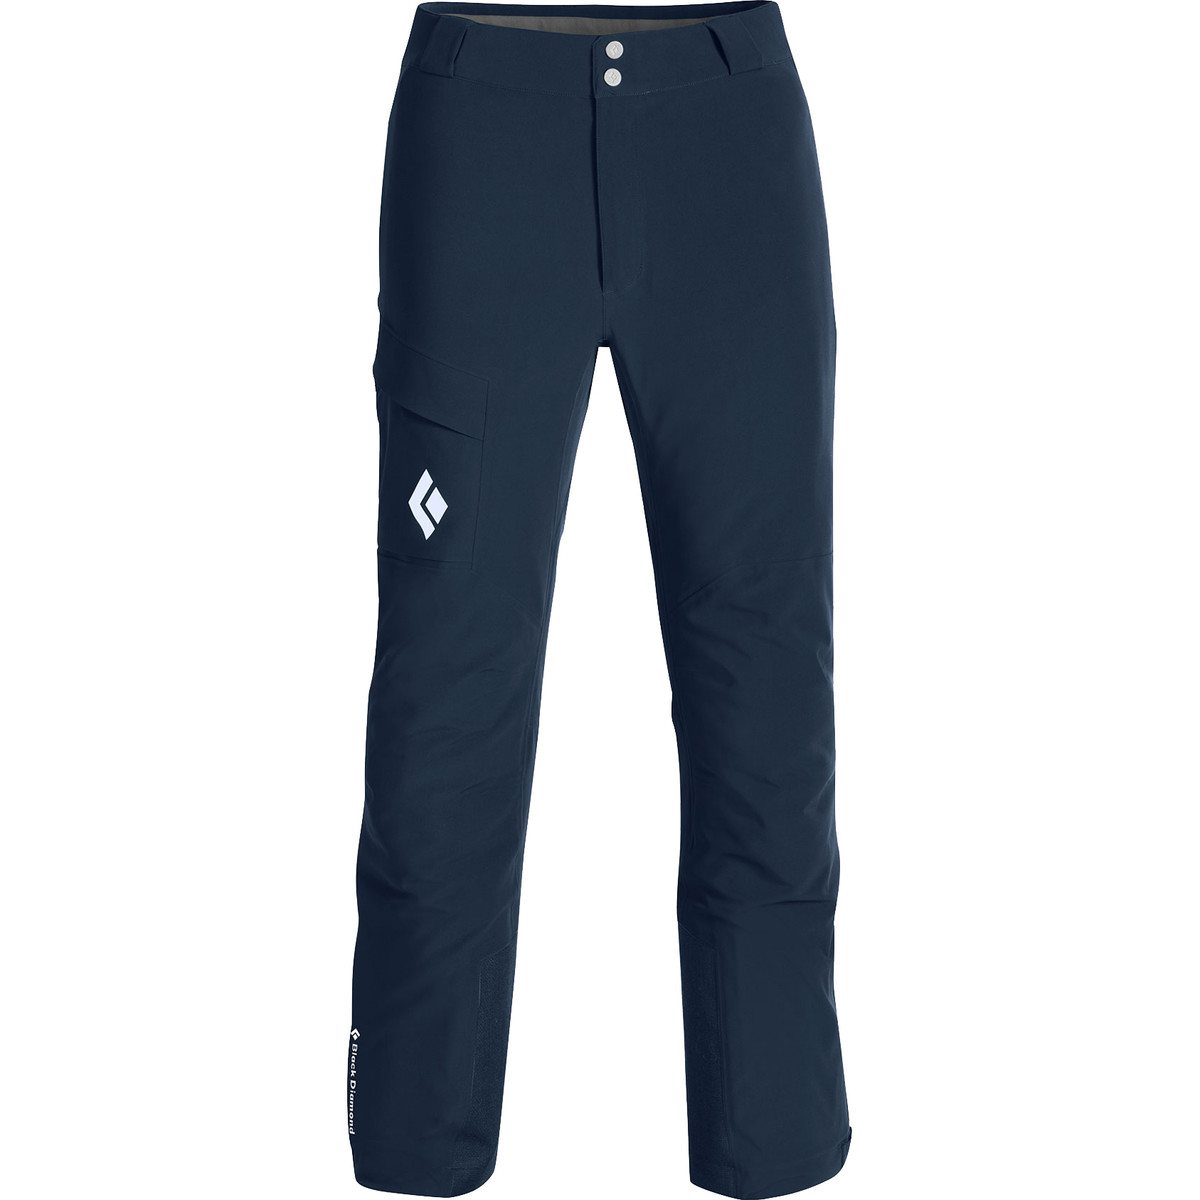 Black Diamond Dawn Patrol LT Climbing Pants